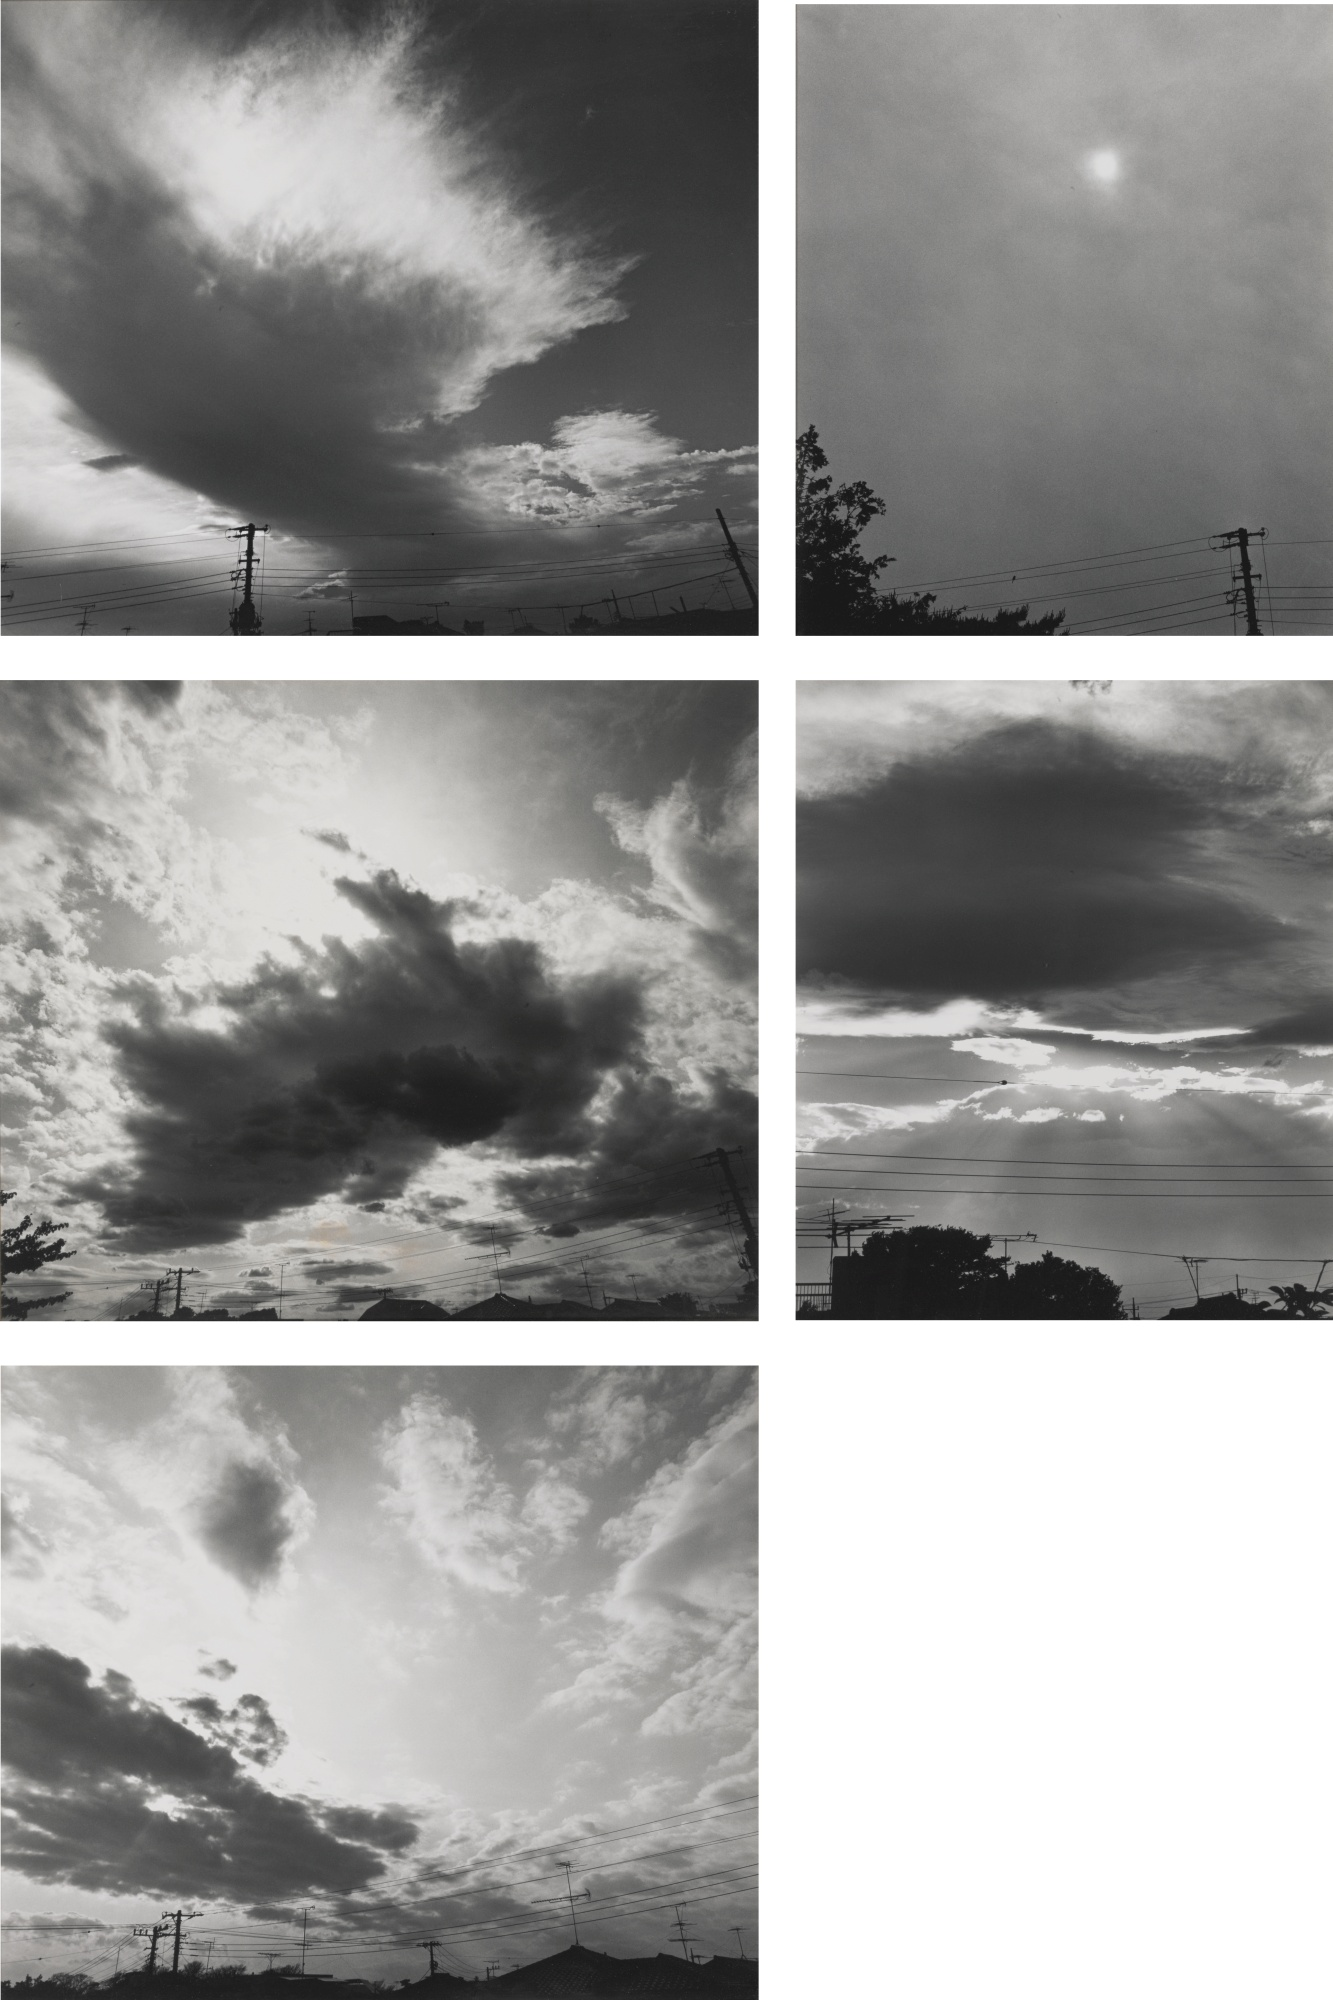 Nobuyoshi Araki-Selected Images From Skyscapes-1980